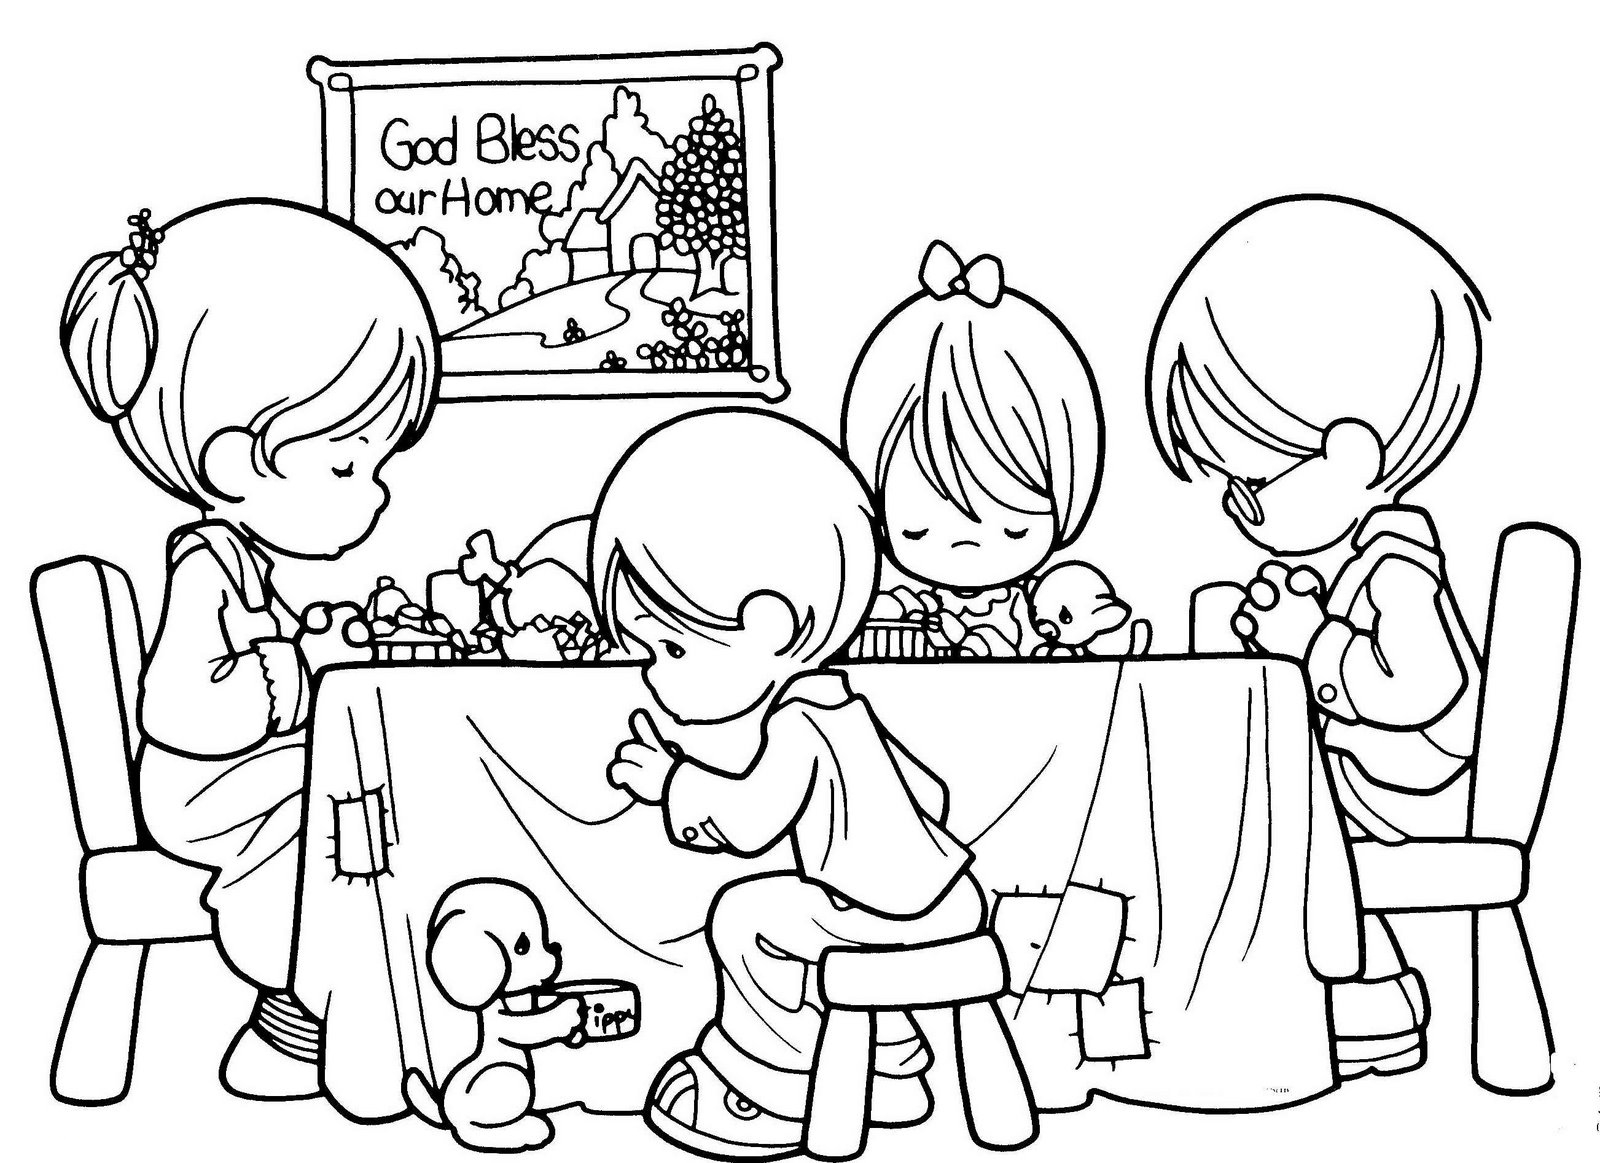 Free printable christian coloring pages for kids best for Christian thanksgiving coloring pages for kids